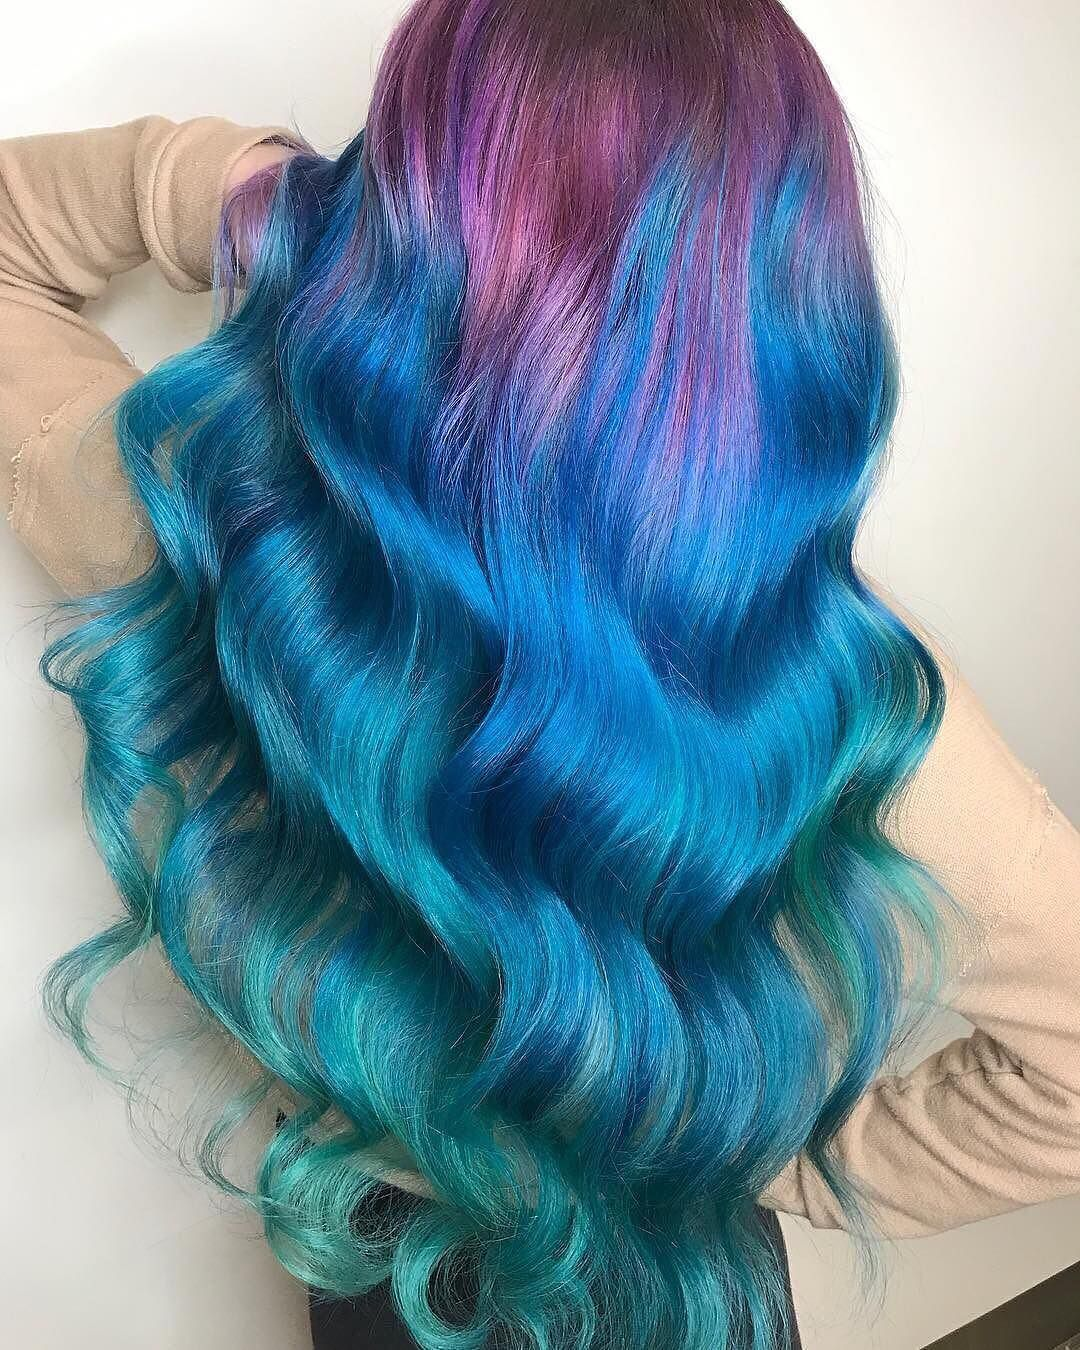 Pin by helpless whilst drying on mermaid hair goals pinterest